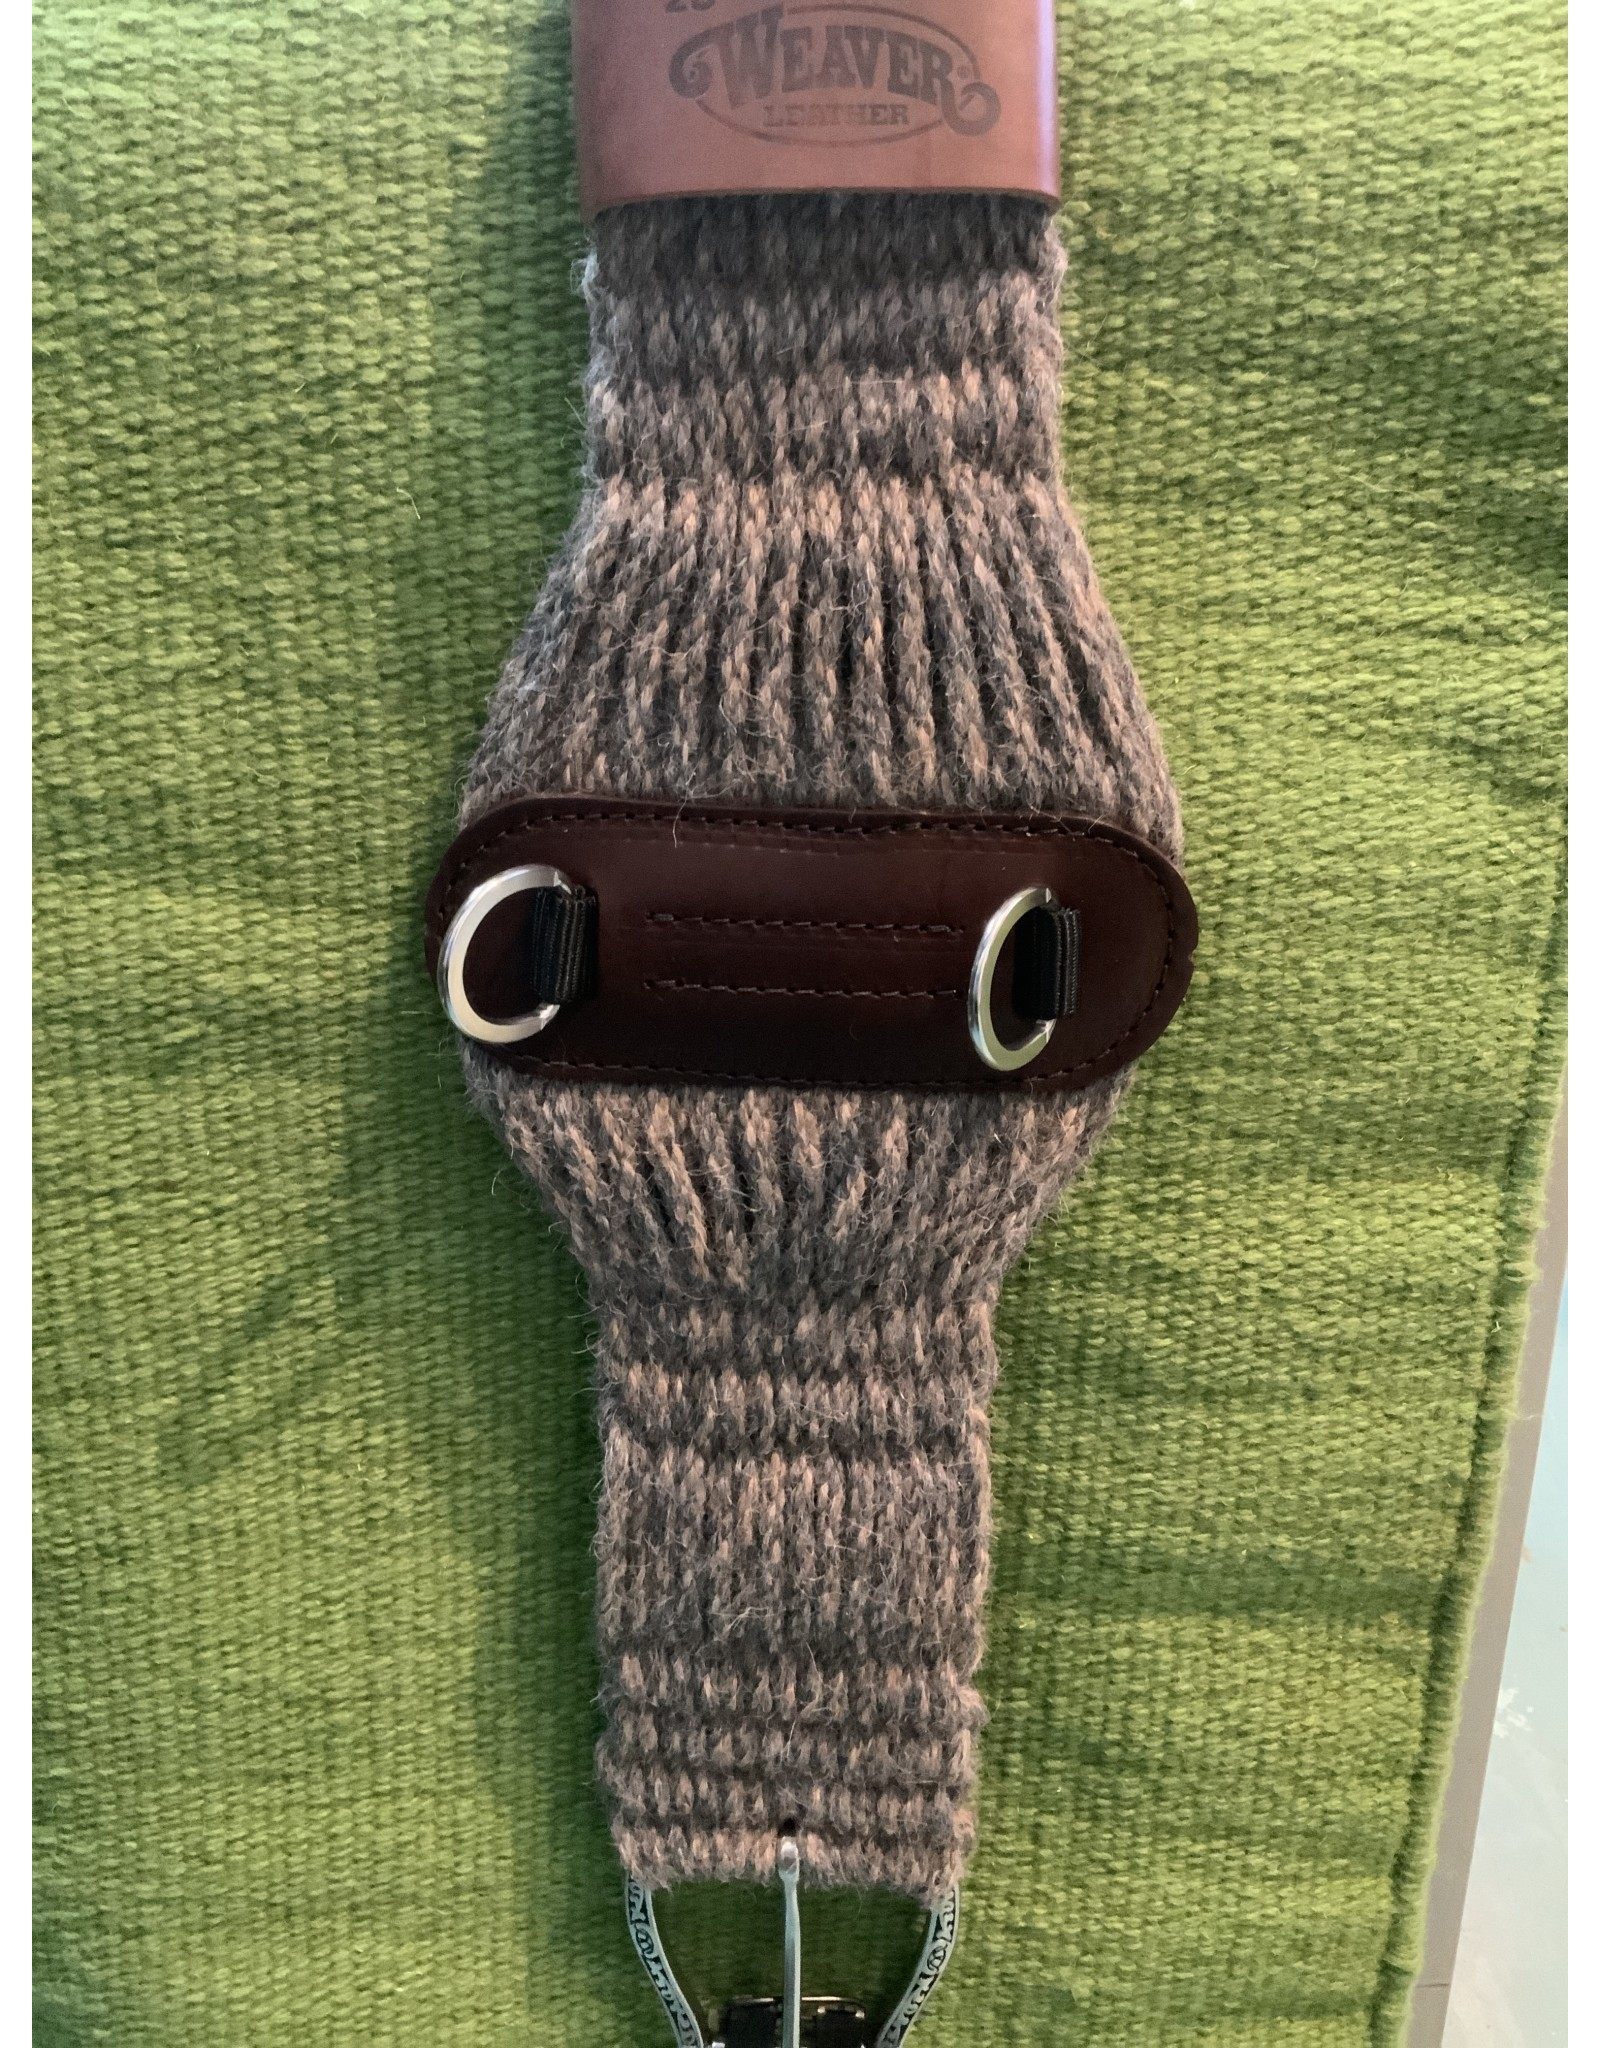 CIN* 100% Alpaca Roper Cinch 34''    35-2439-34   AAAA*P (fancy roller buckles and one side leather cinch holder)